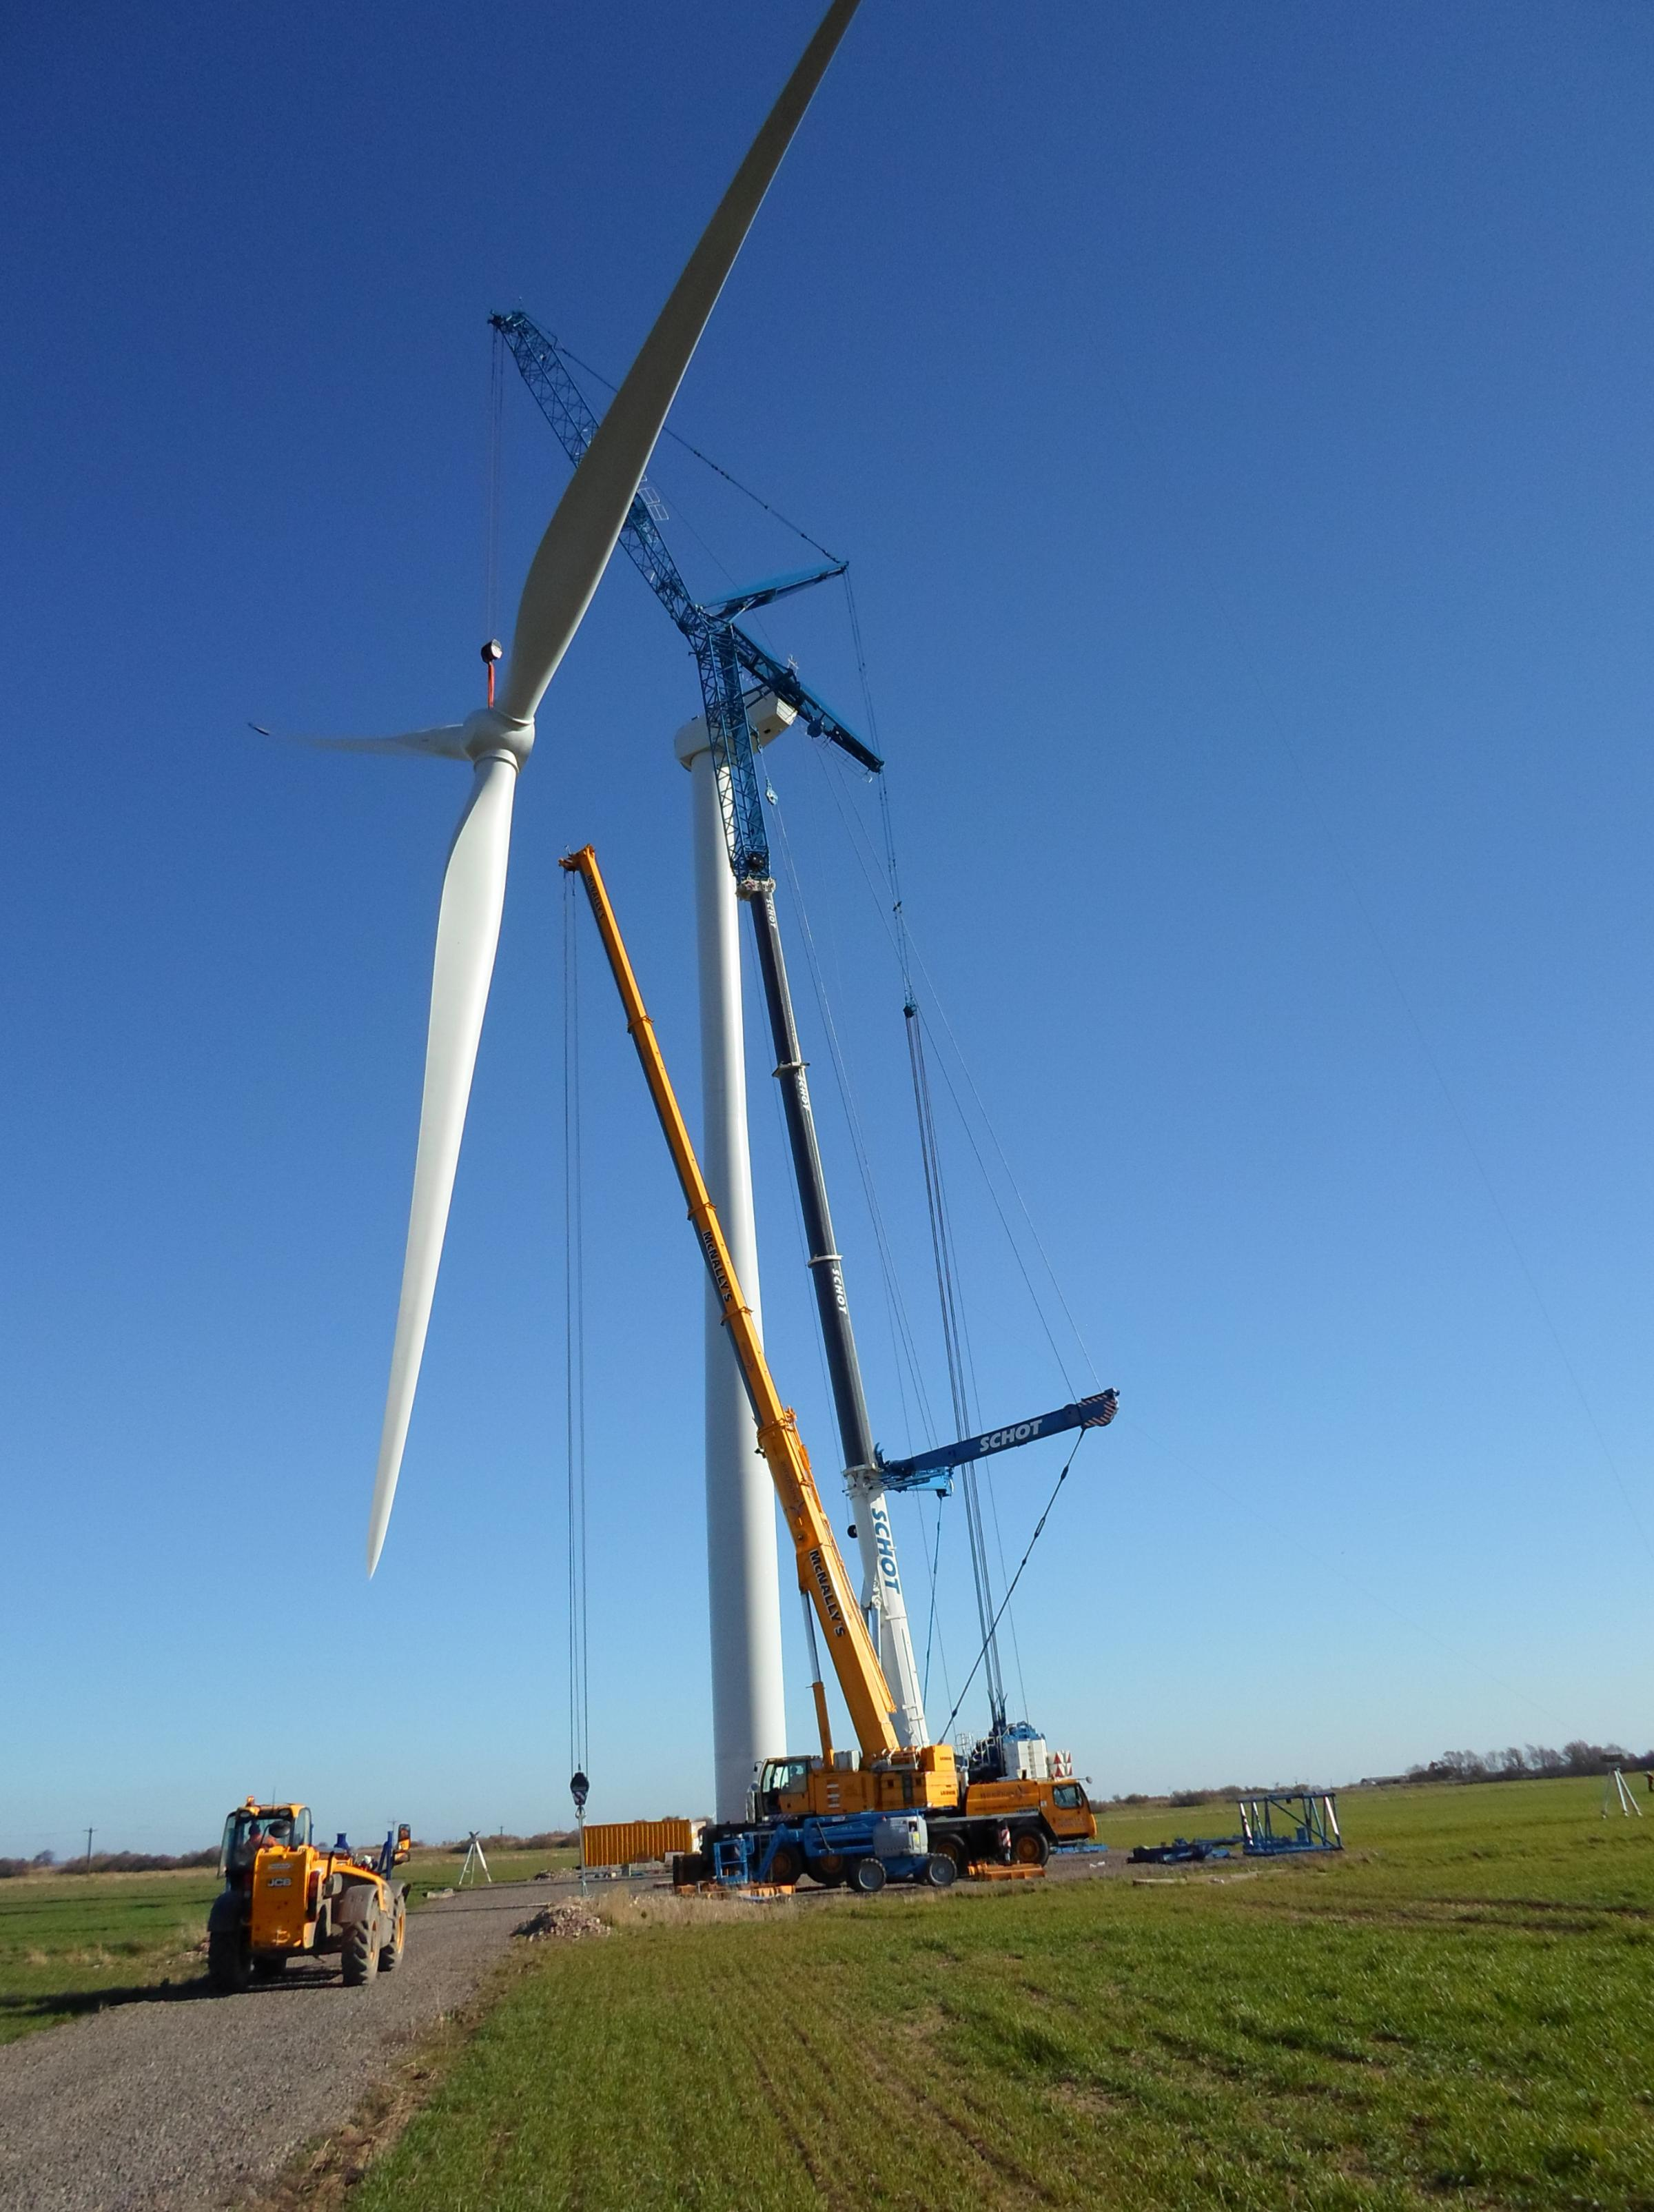 One of the turbines at the Goole Fields Wind Farm in East Yorkshire